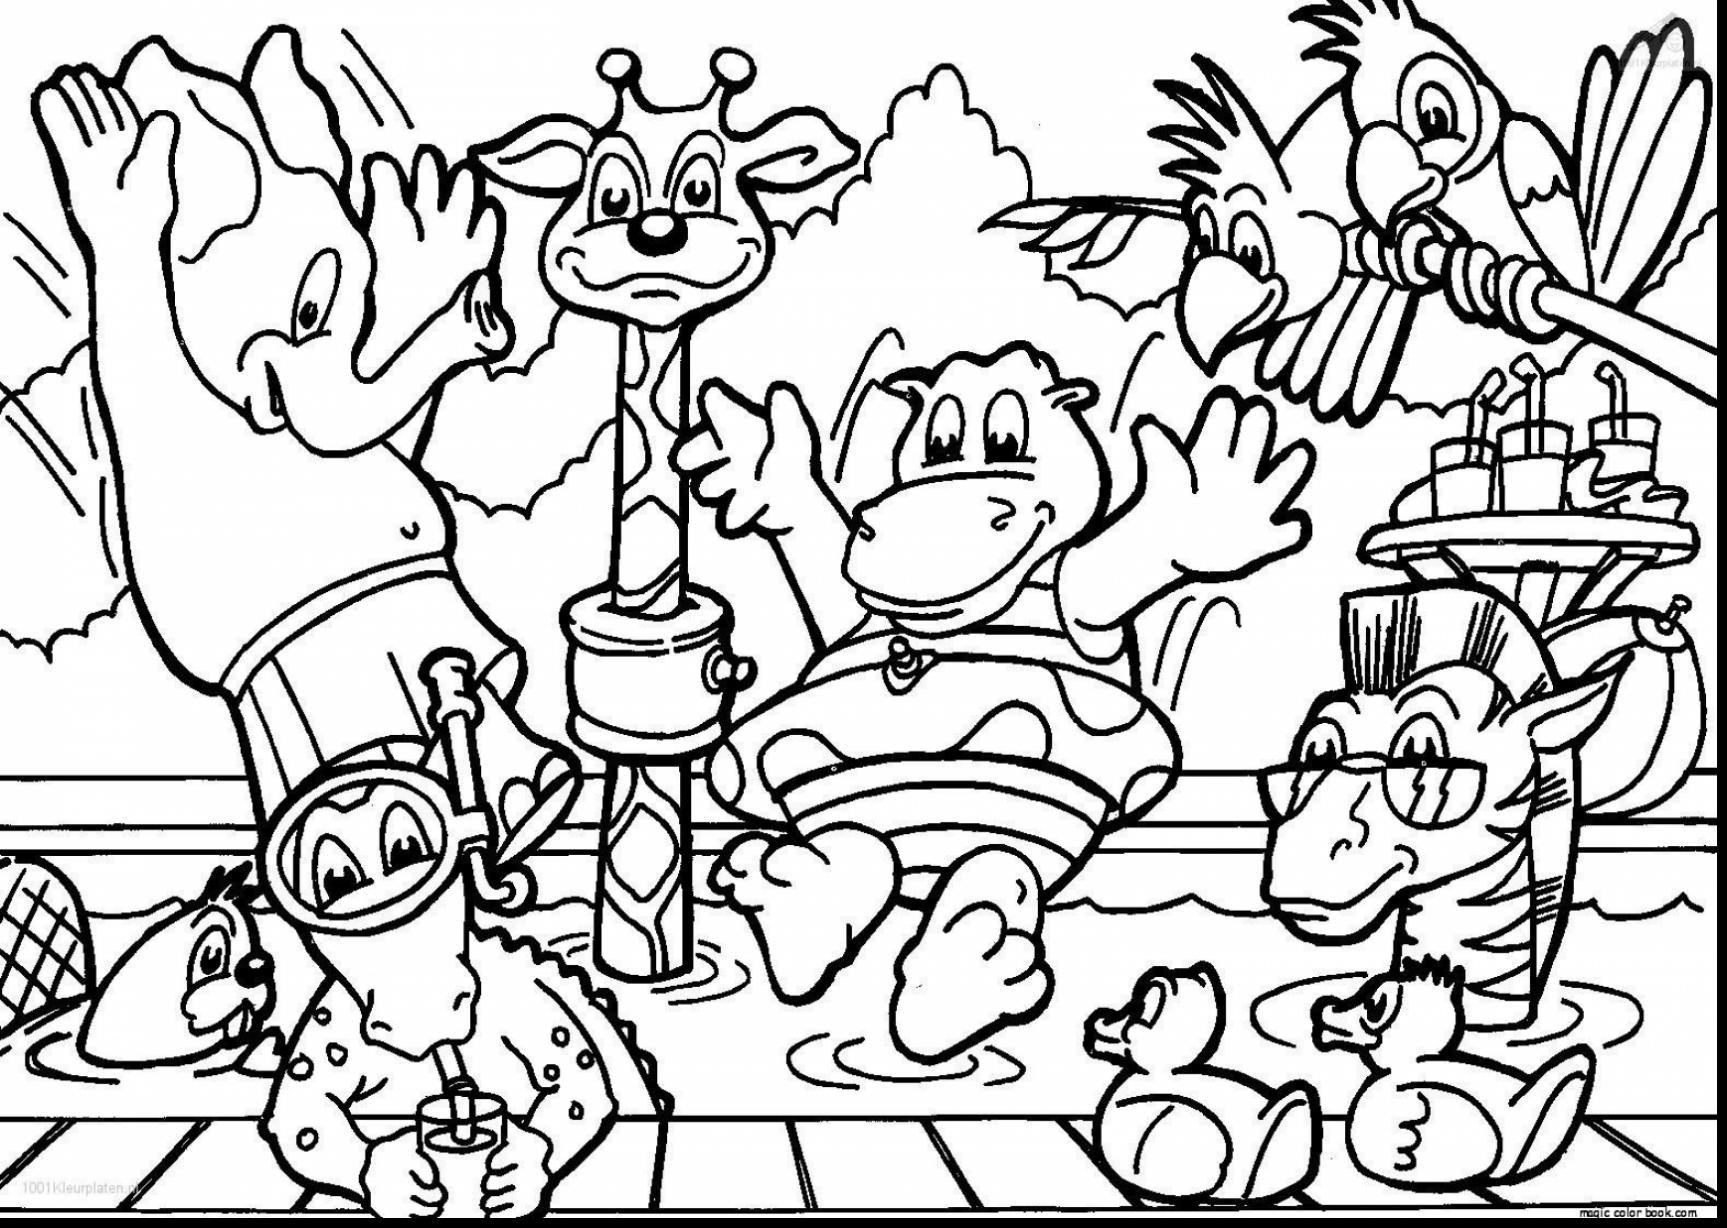 1727x1228 Complete Zoo Coloring Pages To Print Confidential Cartoon Animals